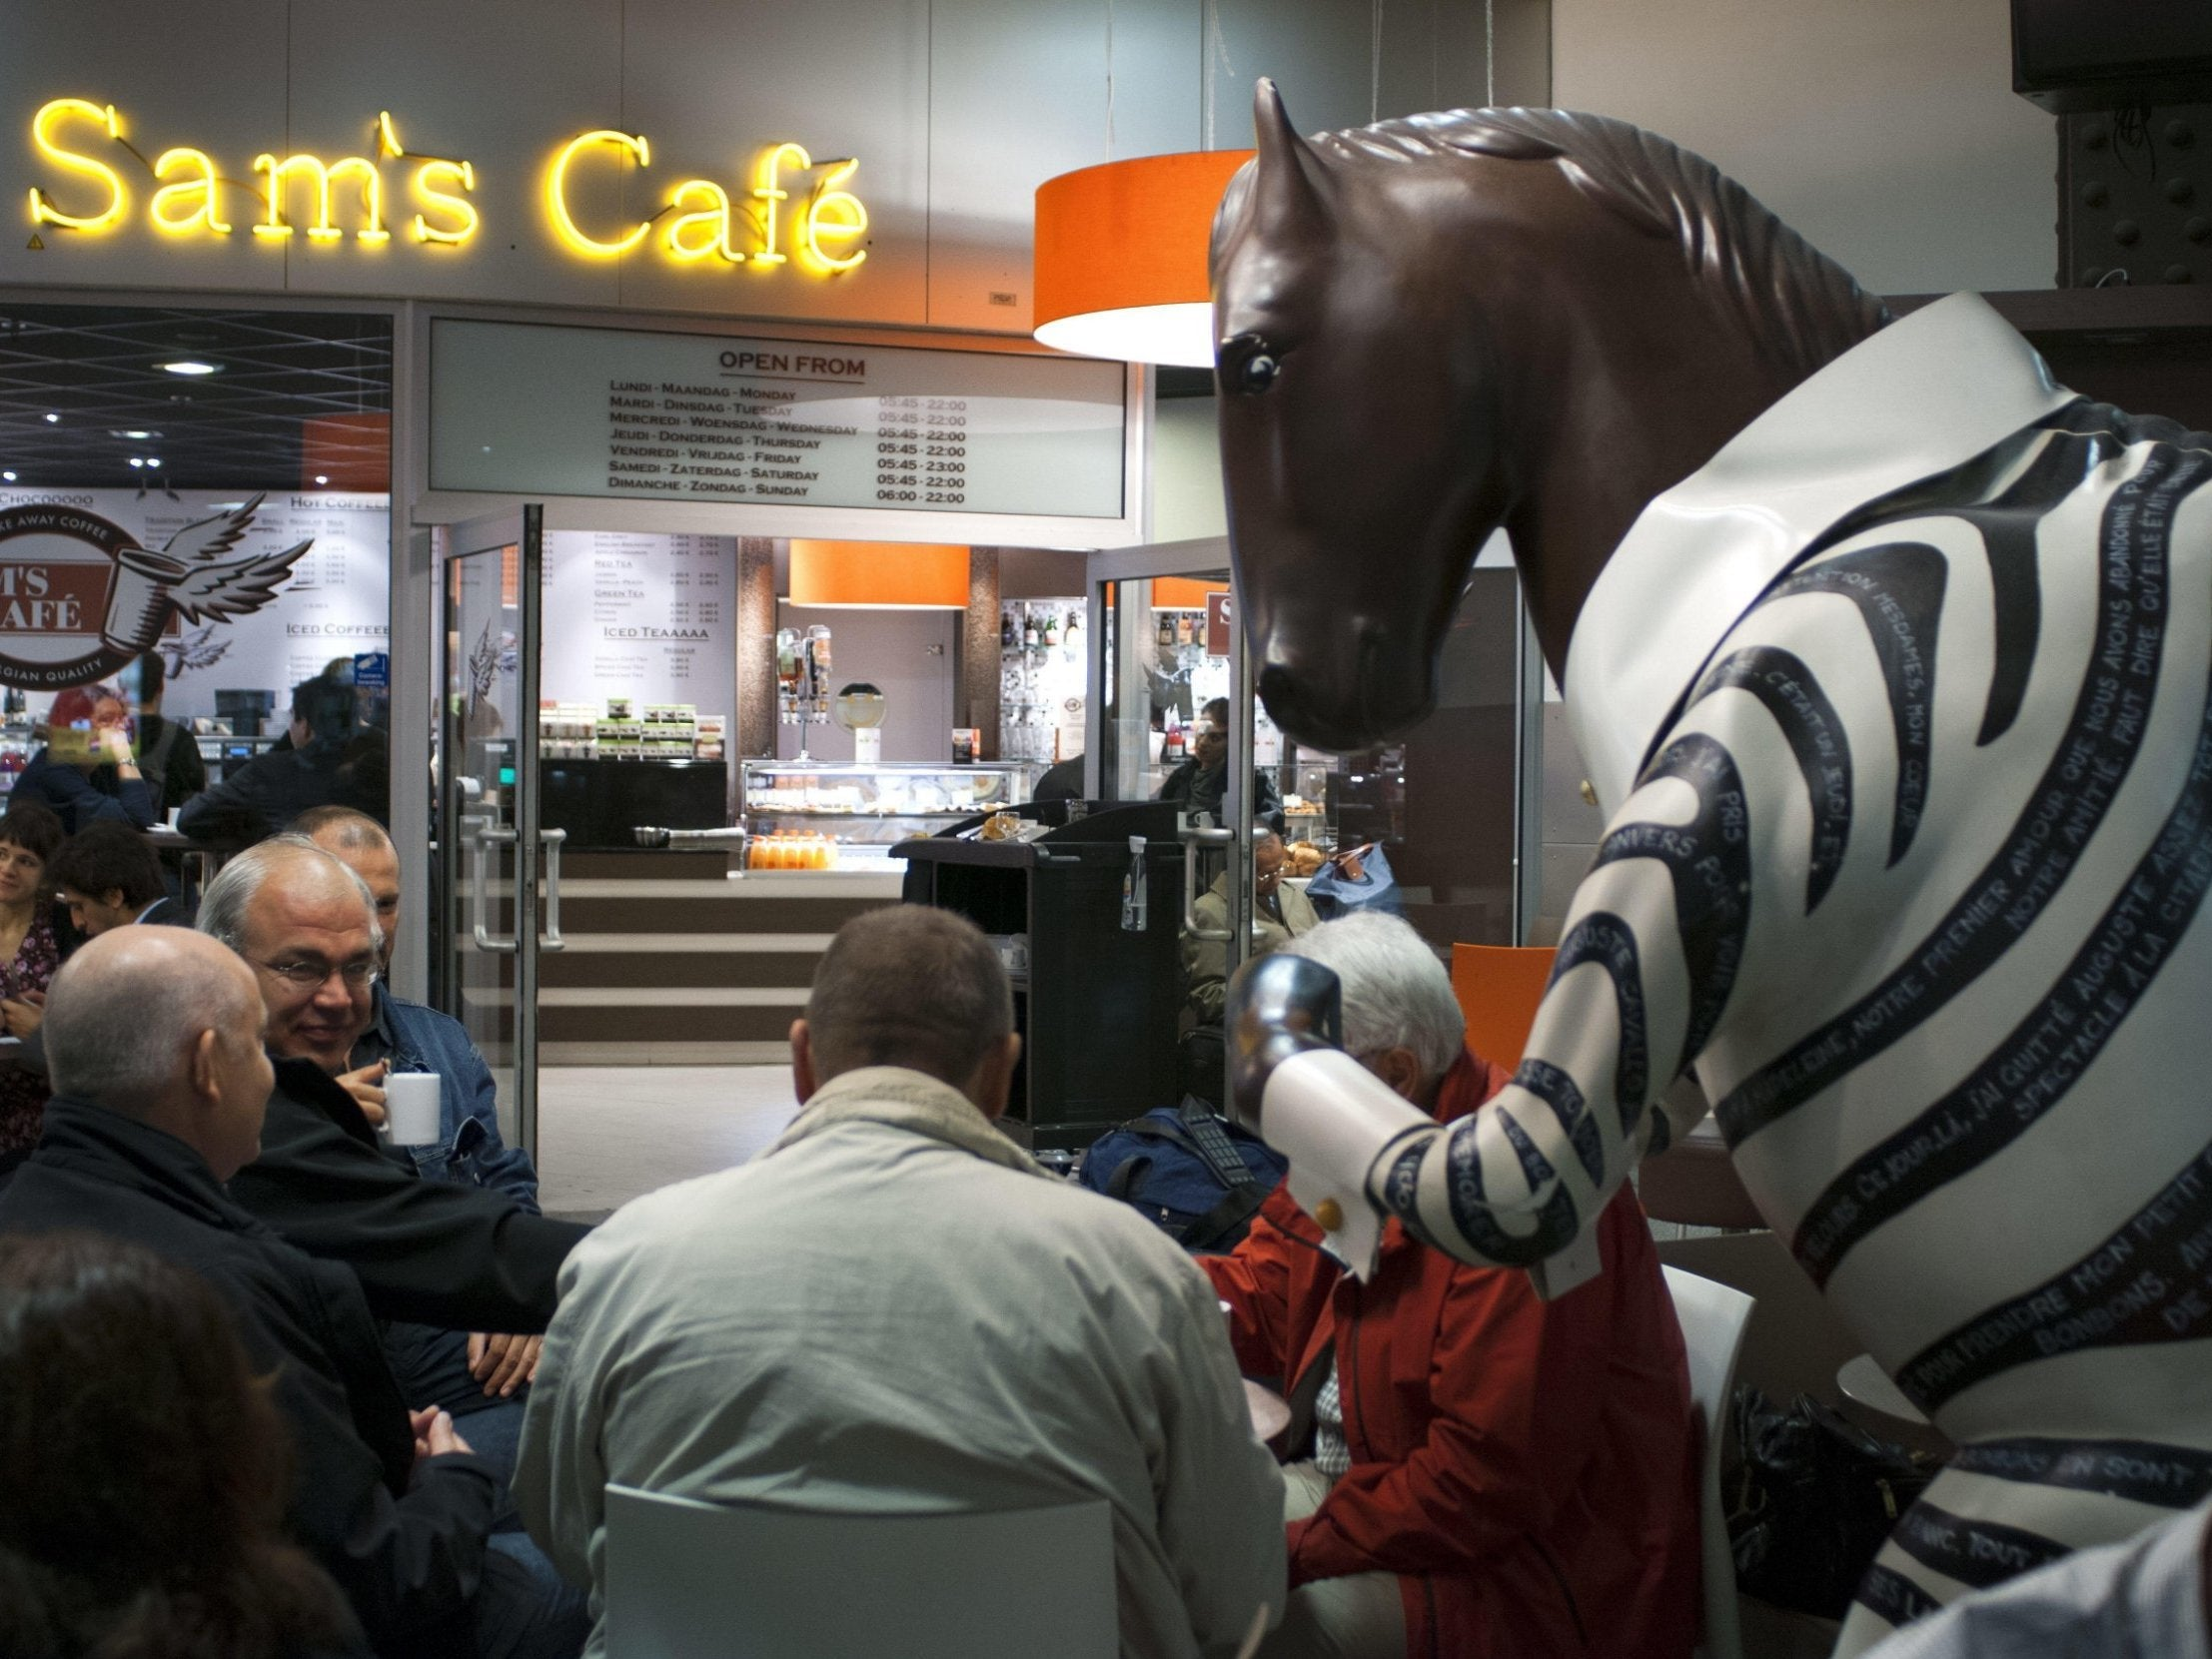 Beloved horse-zebra statue at Brussels station saved after outcry